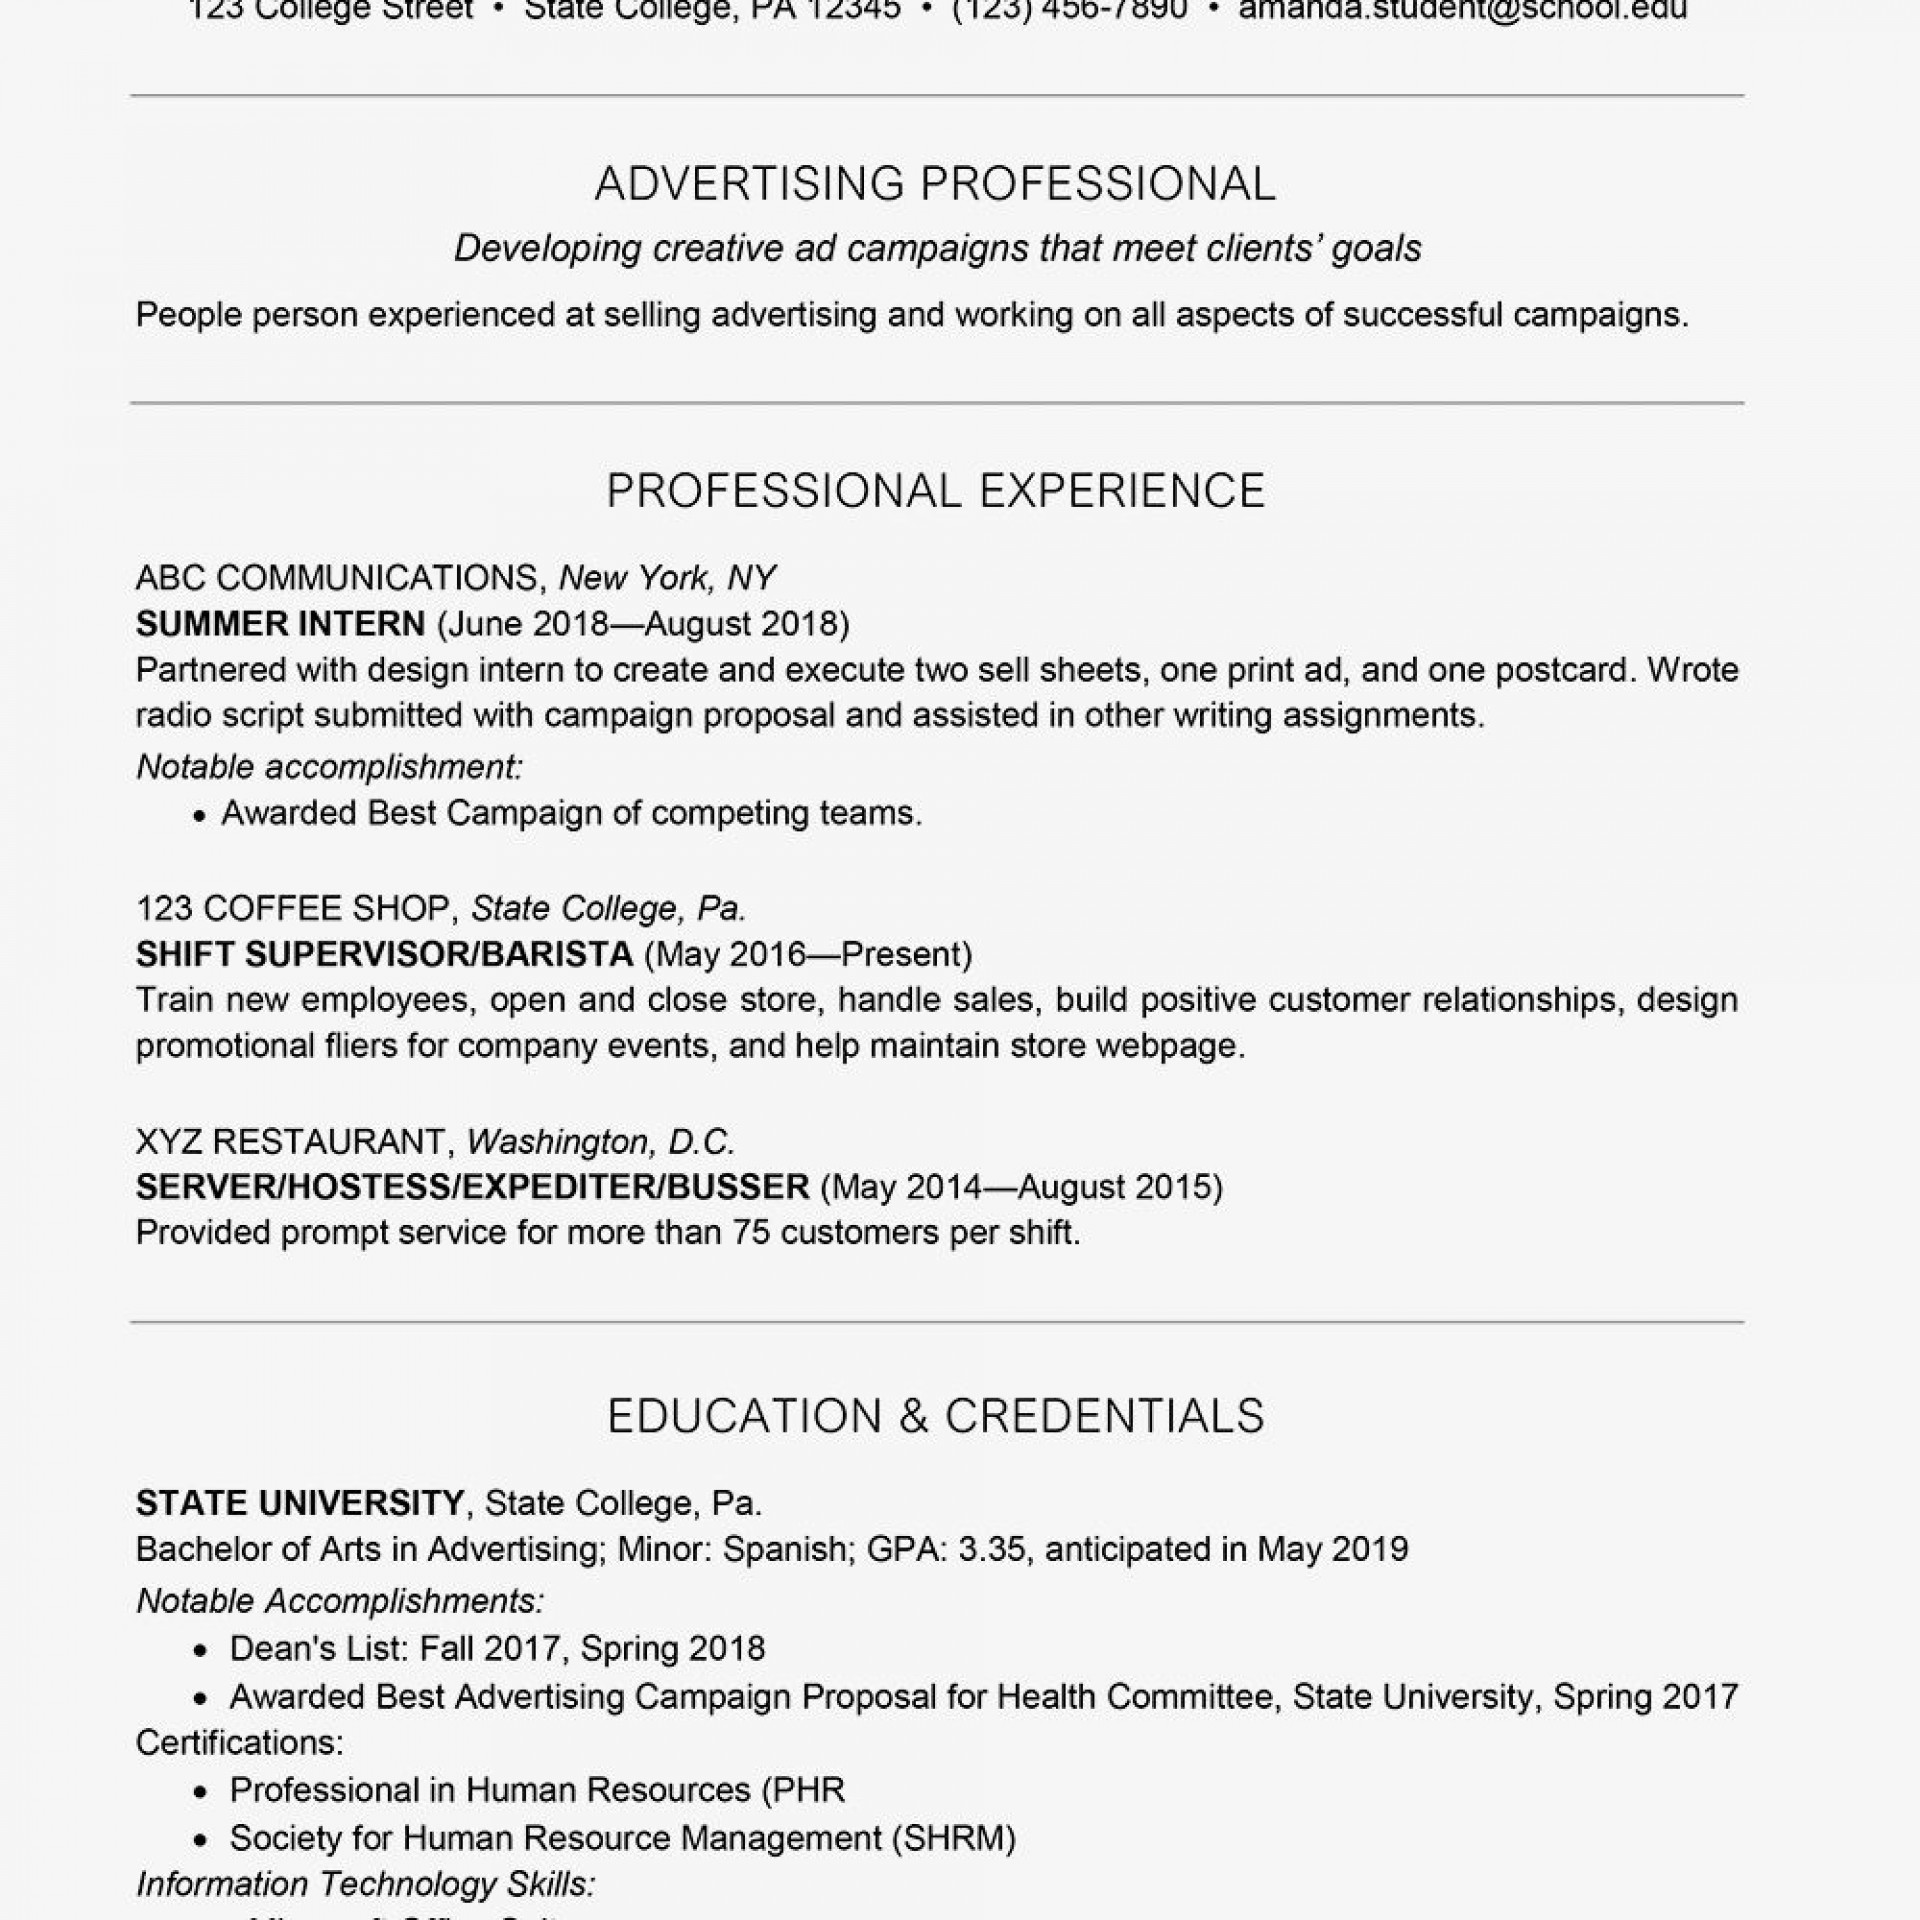 003 Phenomenal Resume Template For College Student Idea  Students Free Download Example With Little Work Experience1920